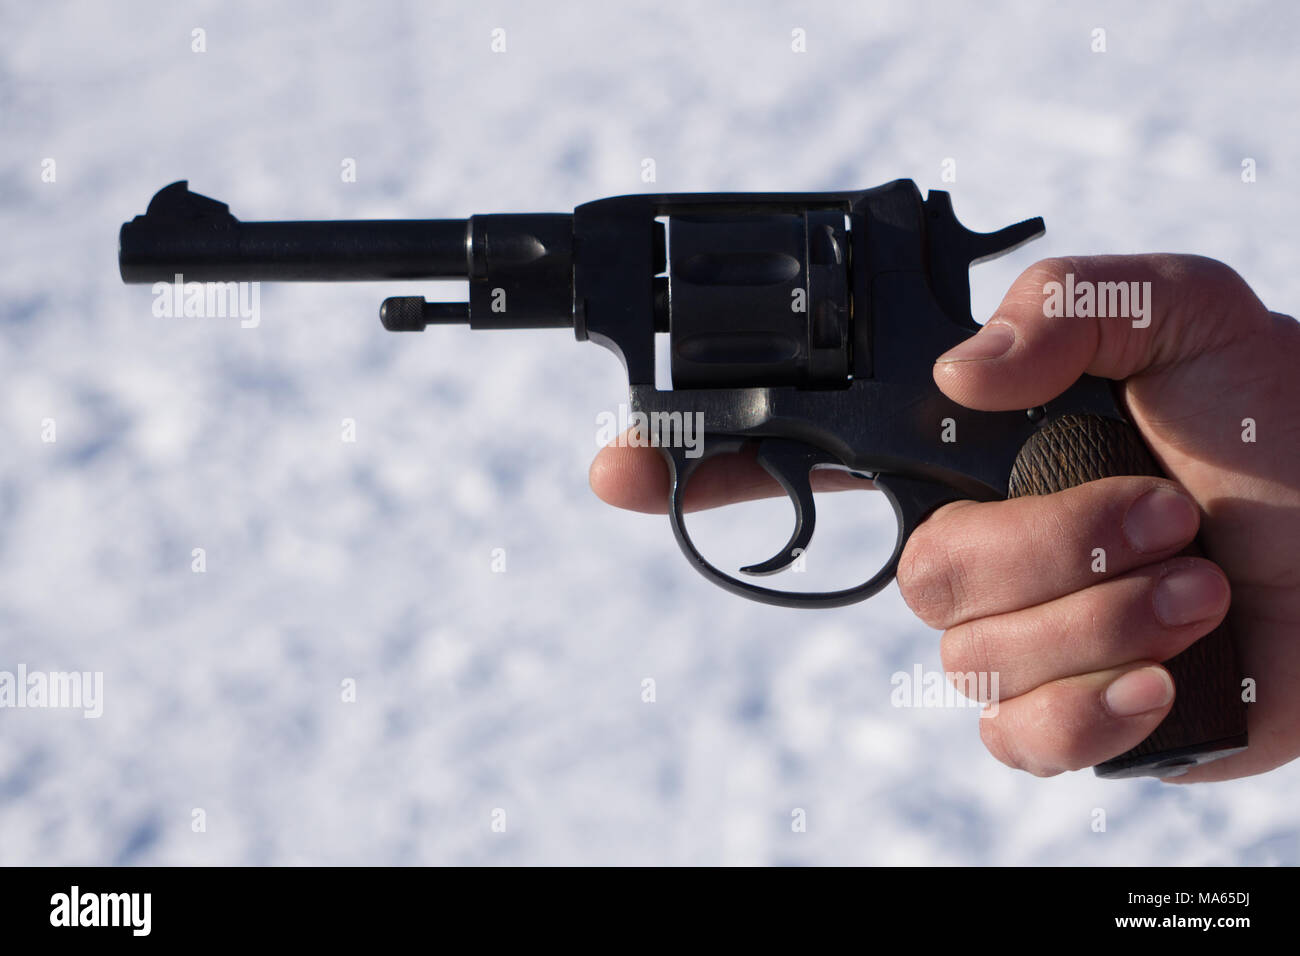 Men hand with revolver pistol isolated on a white background - Stock Image